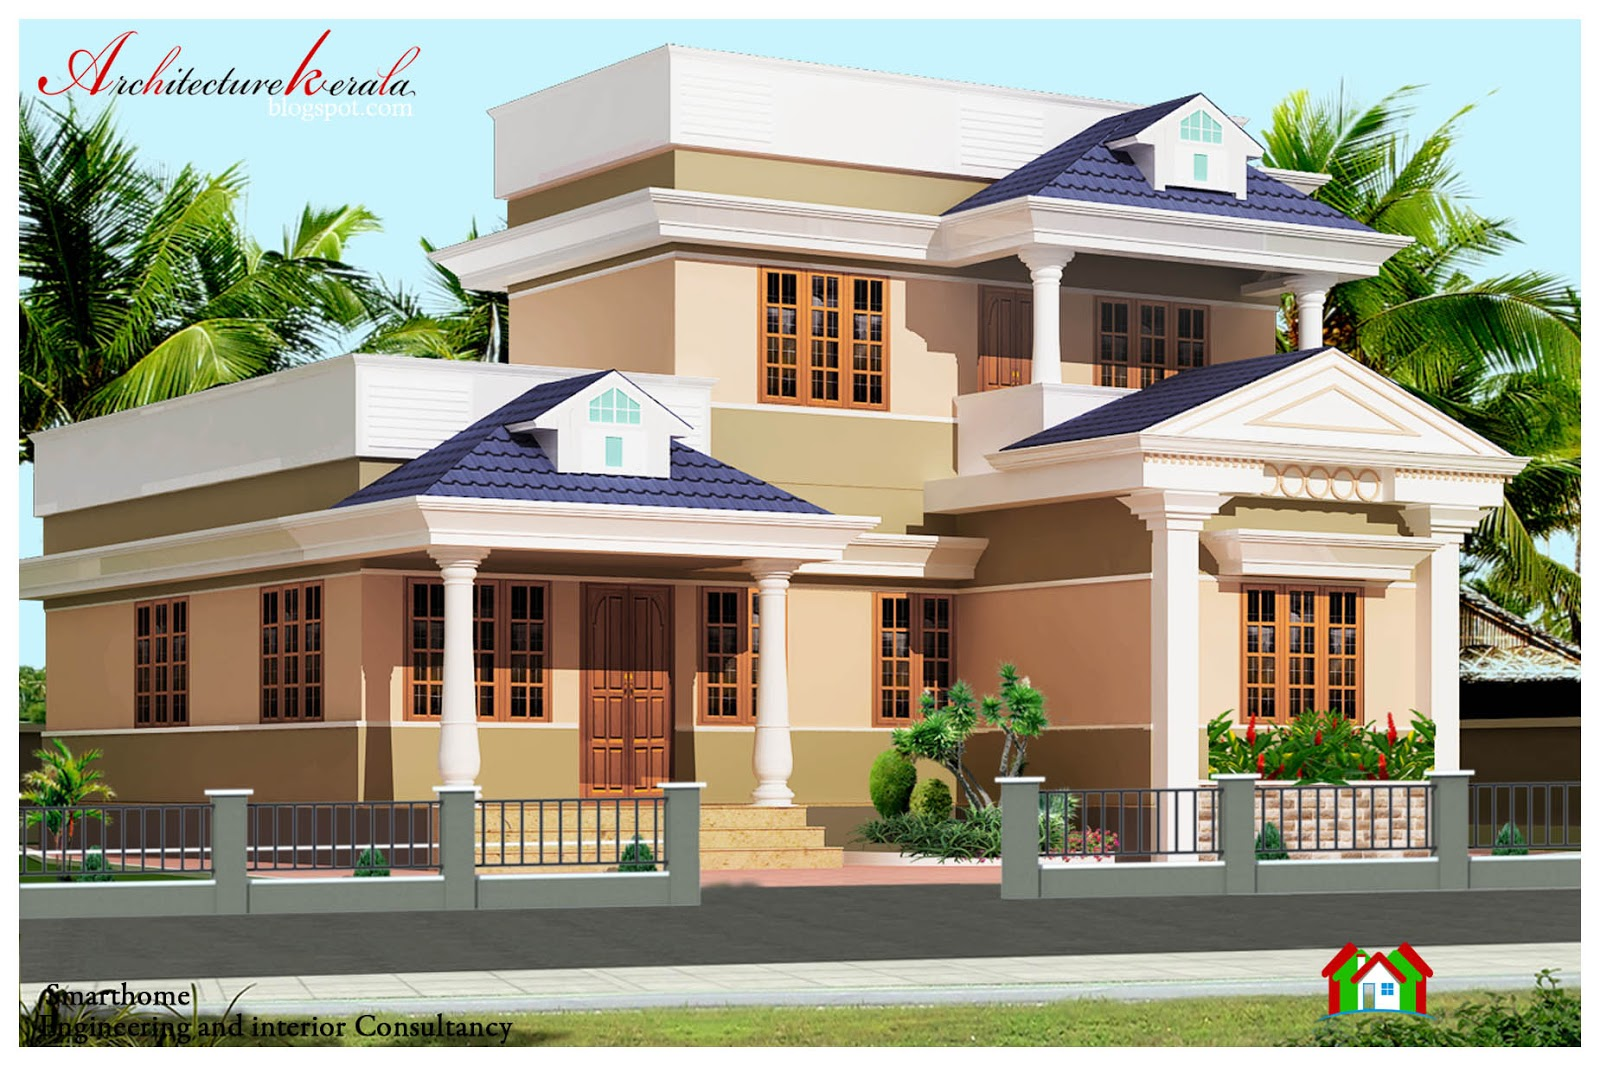 Architecture kerala 1000 sq ft kerala style house plan for Kerala veedu design